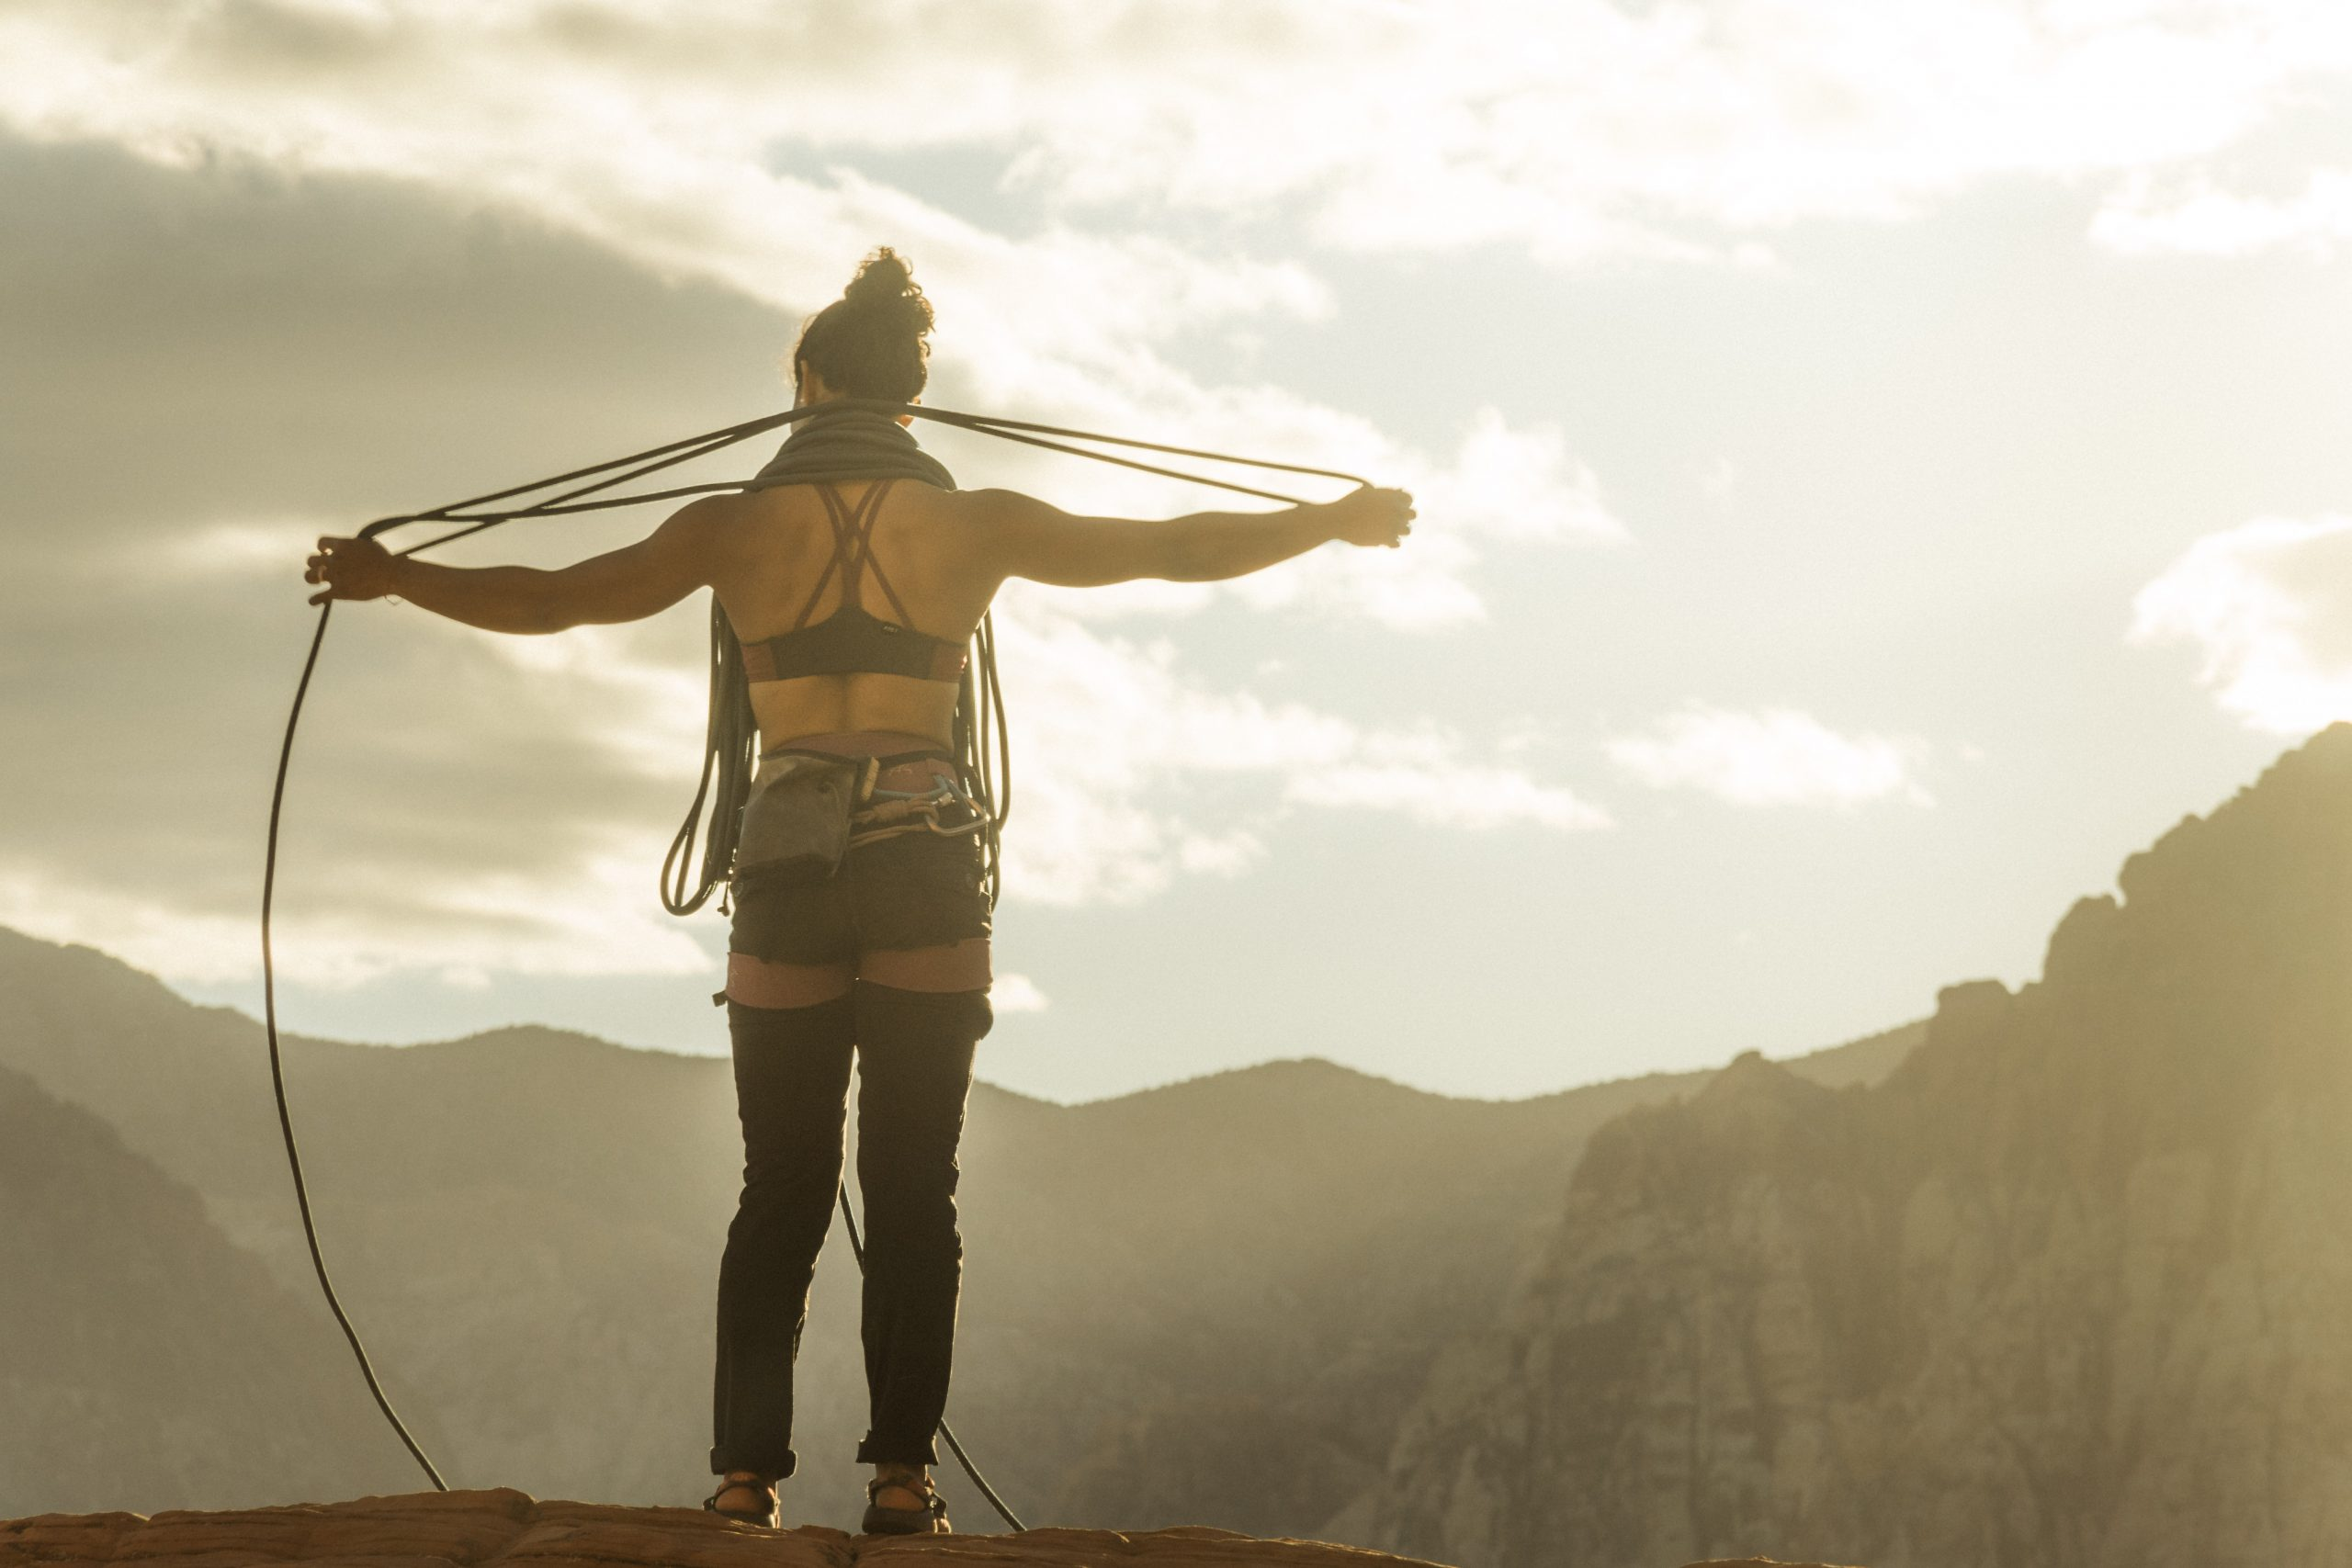 Female Rock Climber Maiza Lima in a Têra Kaia basewear top sports bra with a rope over a mountain view with sunlight.